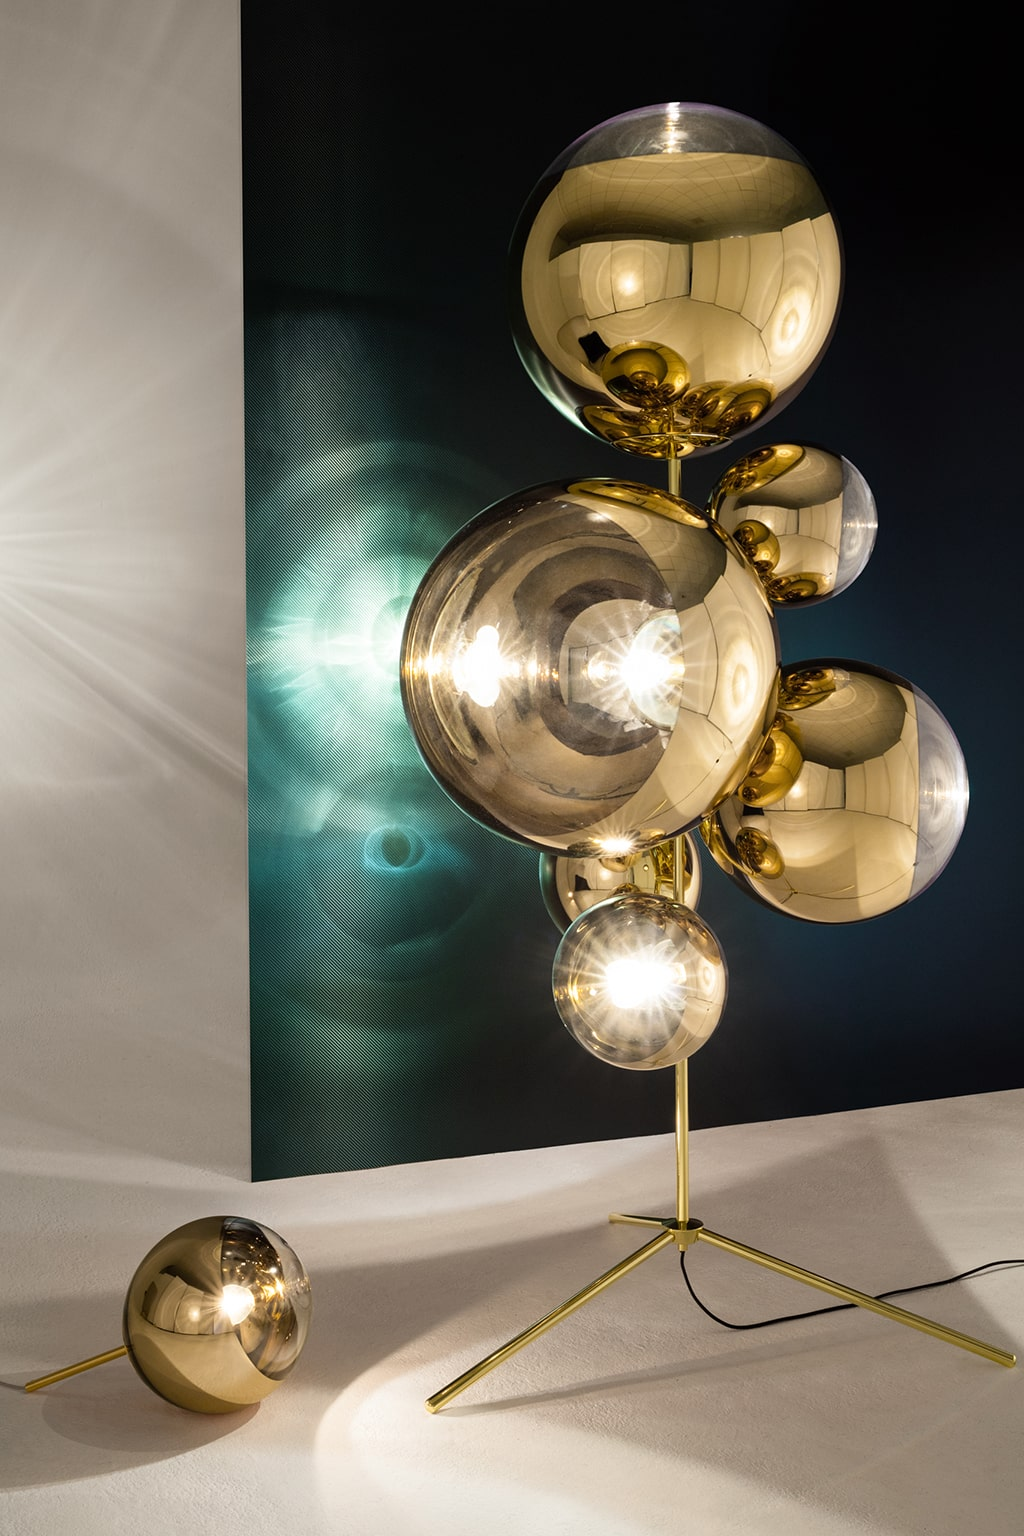 MIRROR BALL STAND CHANDELIER - TOM DIXON